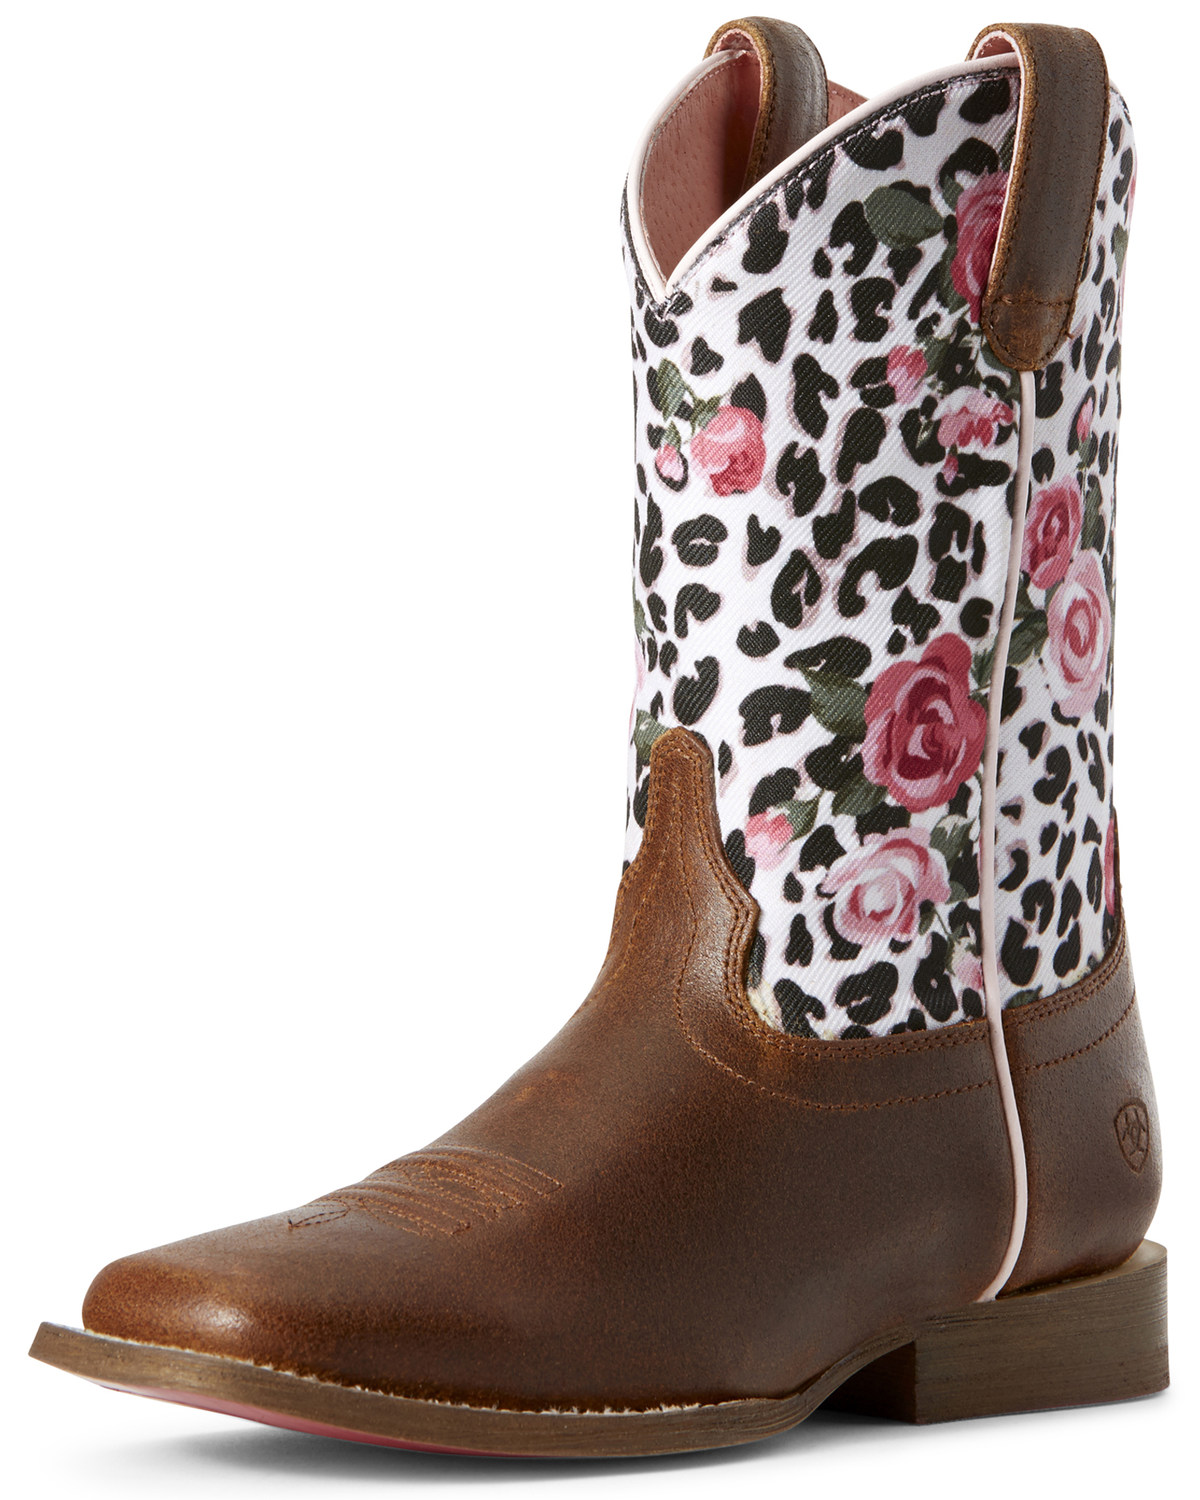 be7c70a13 Ariat Youth Girls  Gringa Western Boots - Wide Square Toe